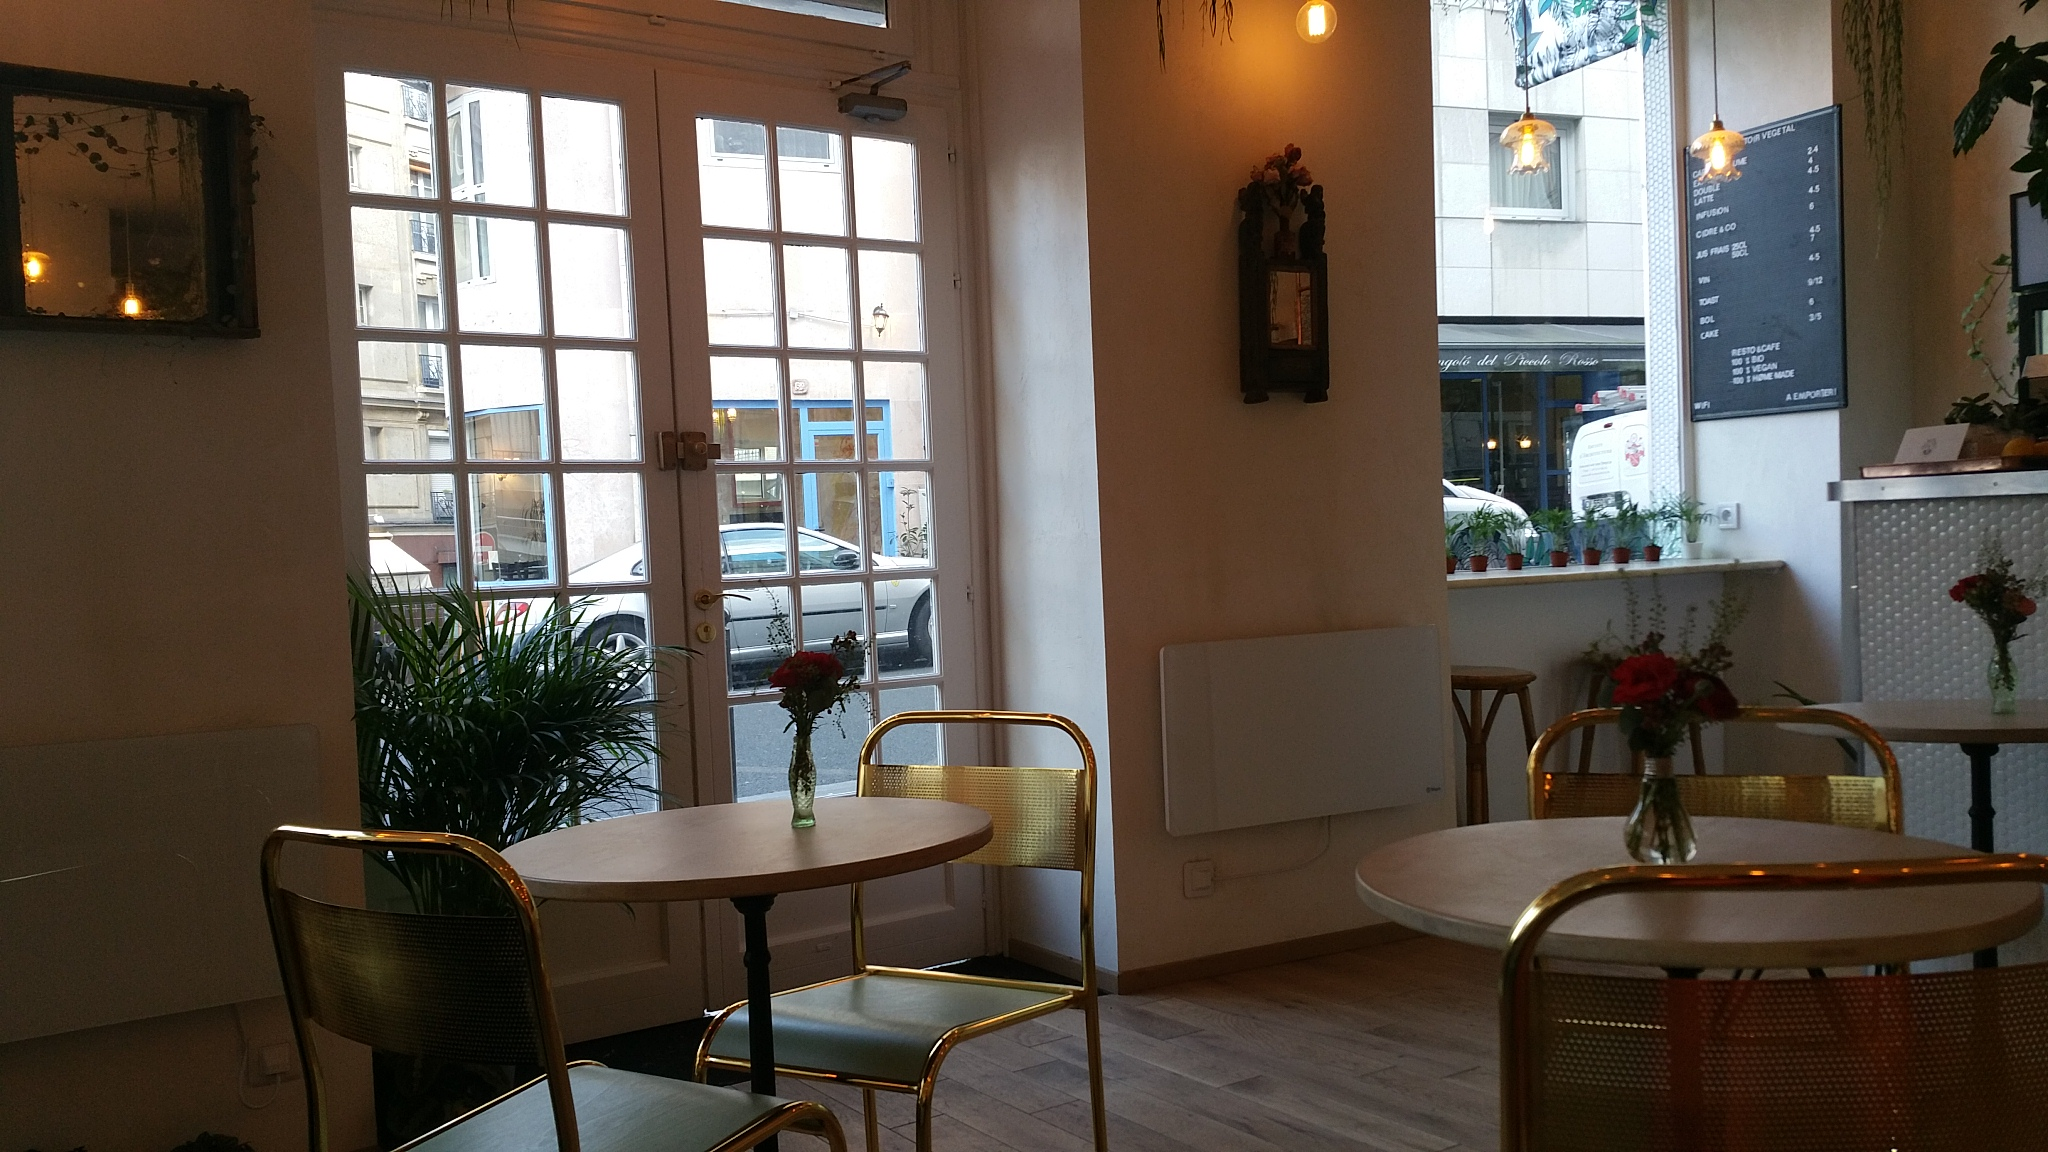 abbatoir-vegetal-coffee-shop-vibes-eat-in-paris-vegan